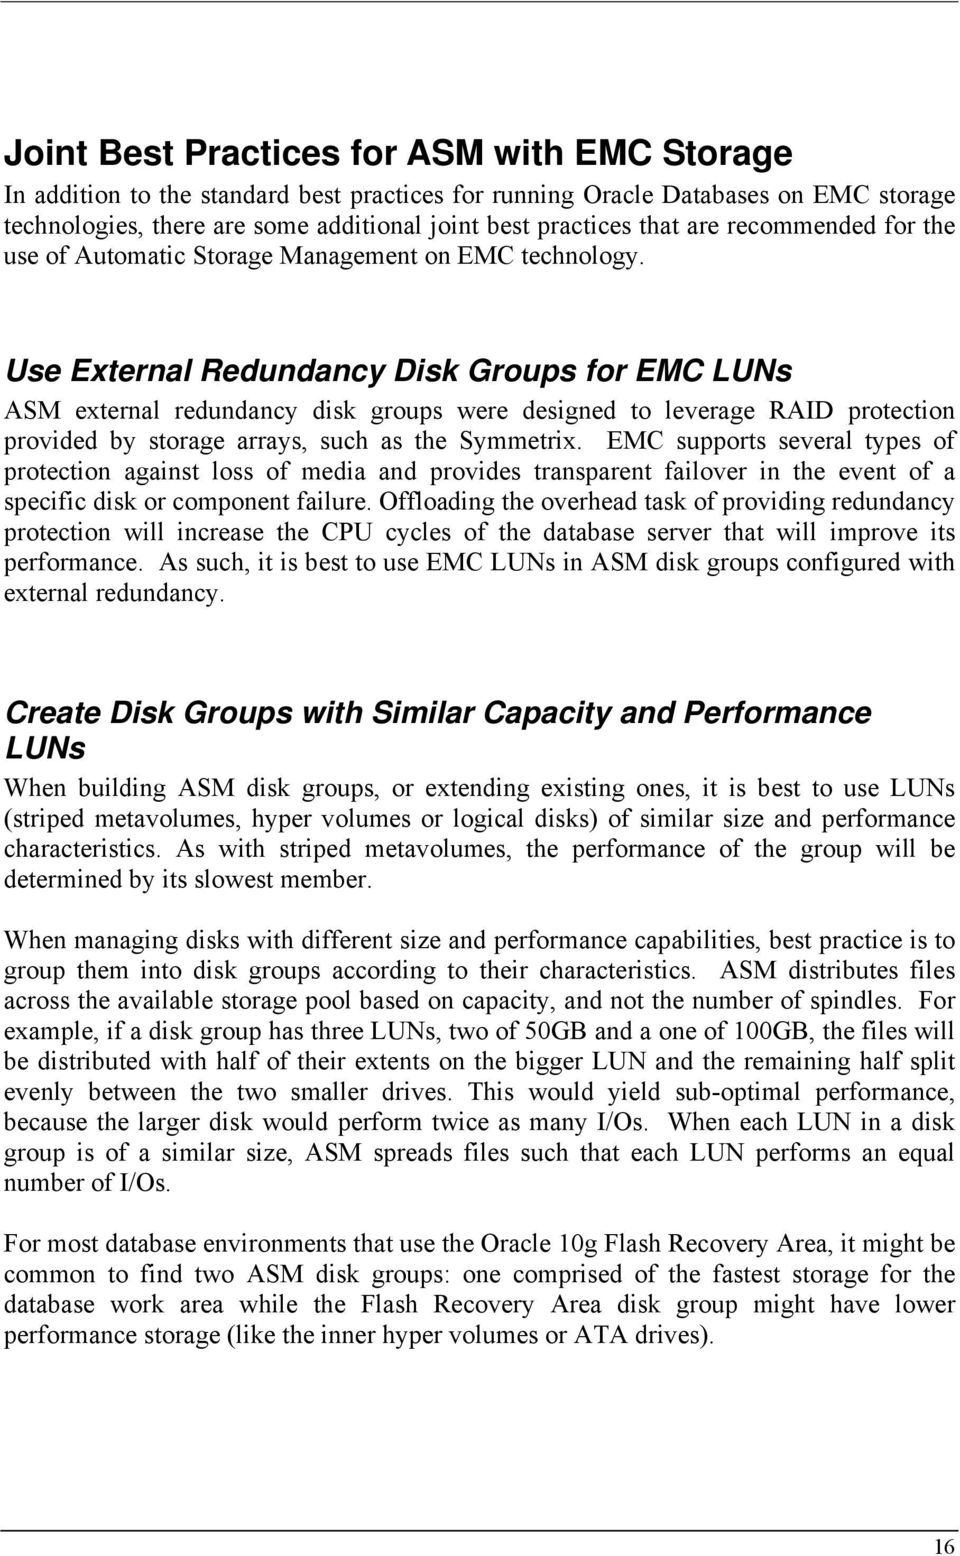 Use External Redundancy Disk Groups for EMC LUNs ASM external redundancy disk groups were designed to leverage RAID protection provided by storage arrays, such as the Symmetrix.